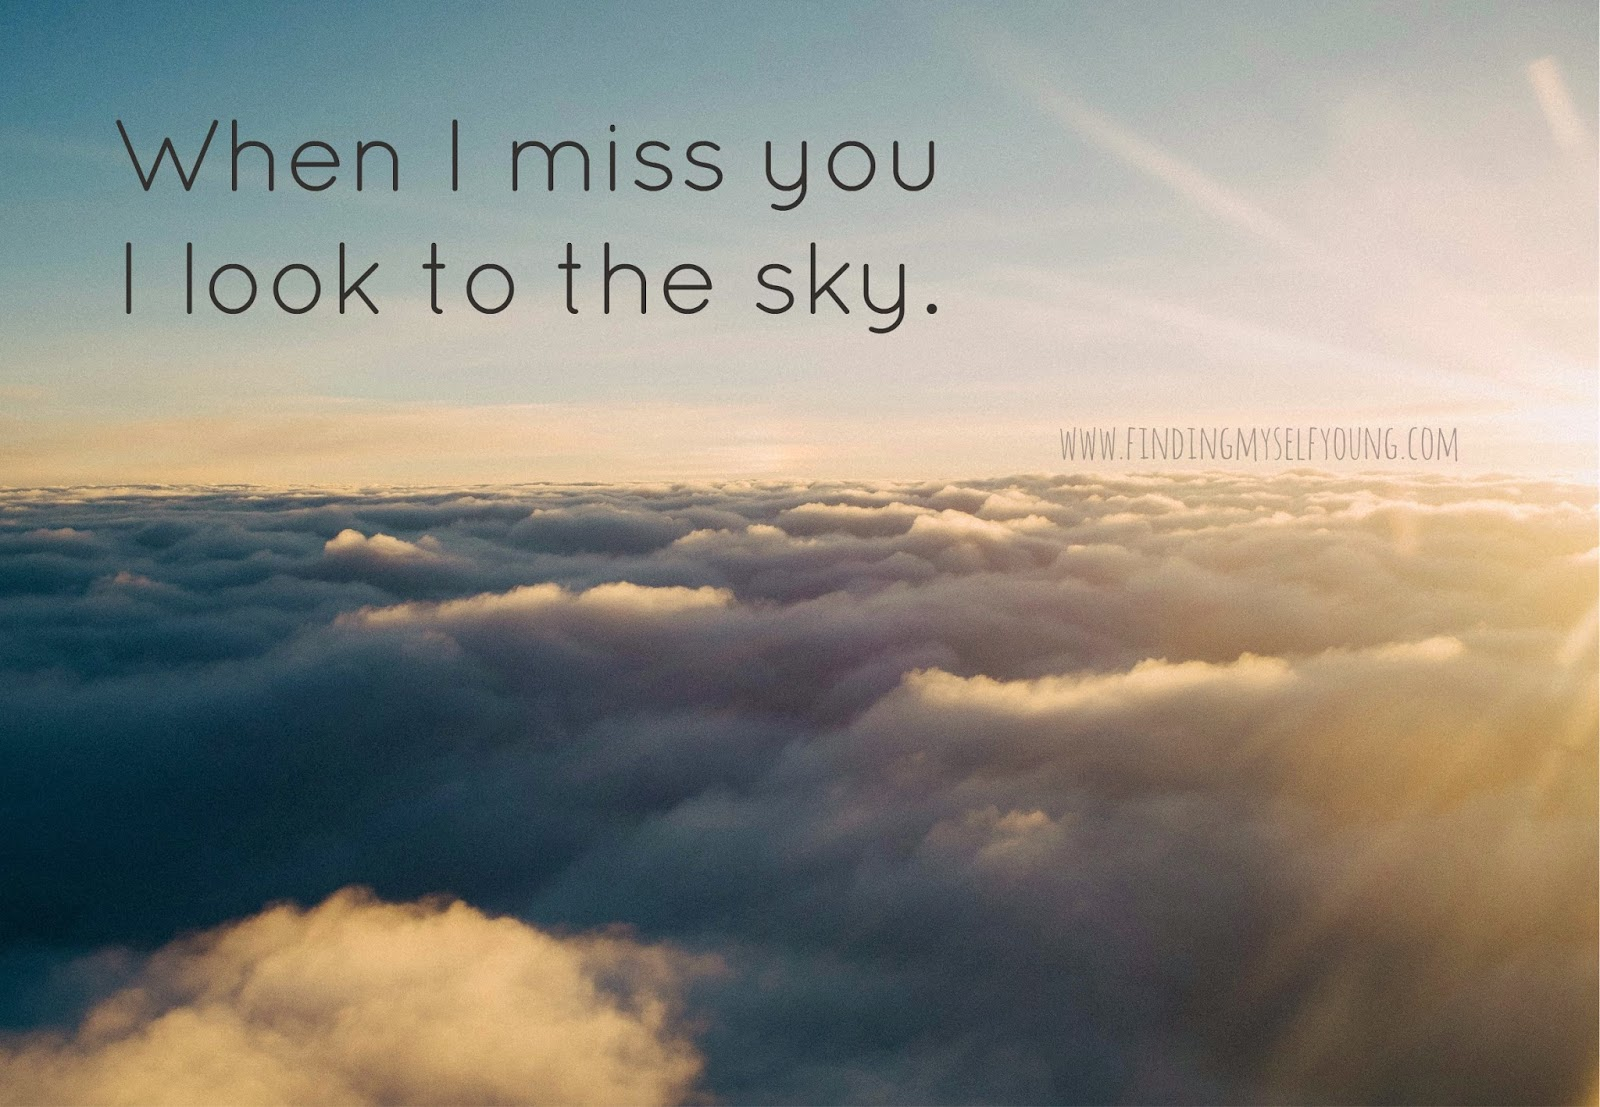 When I miss you I look to the sky